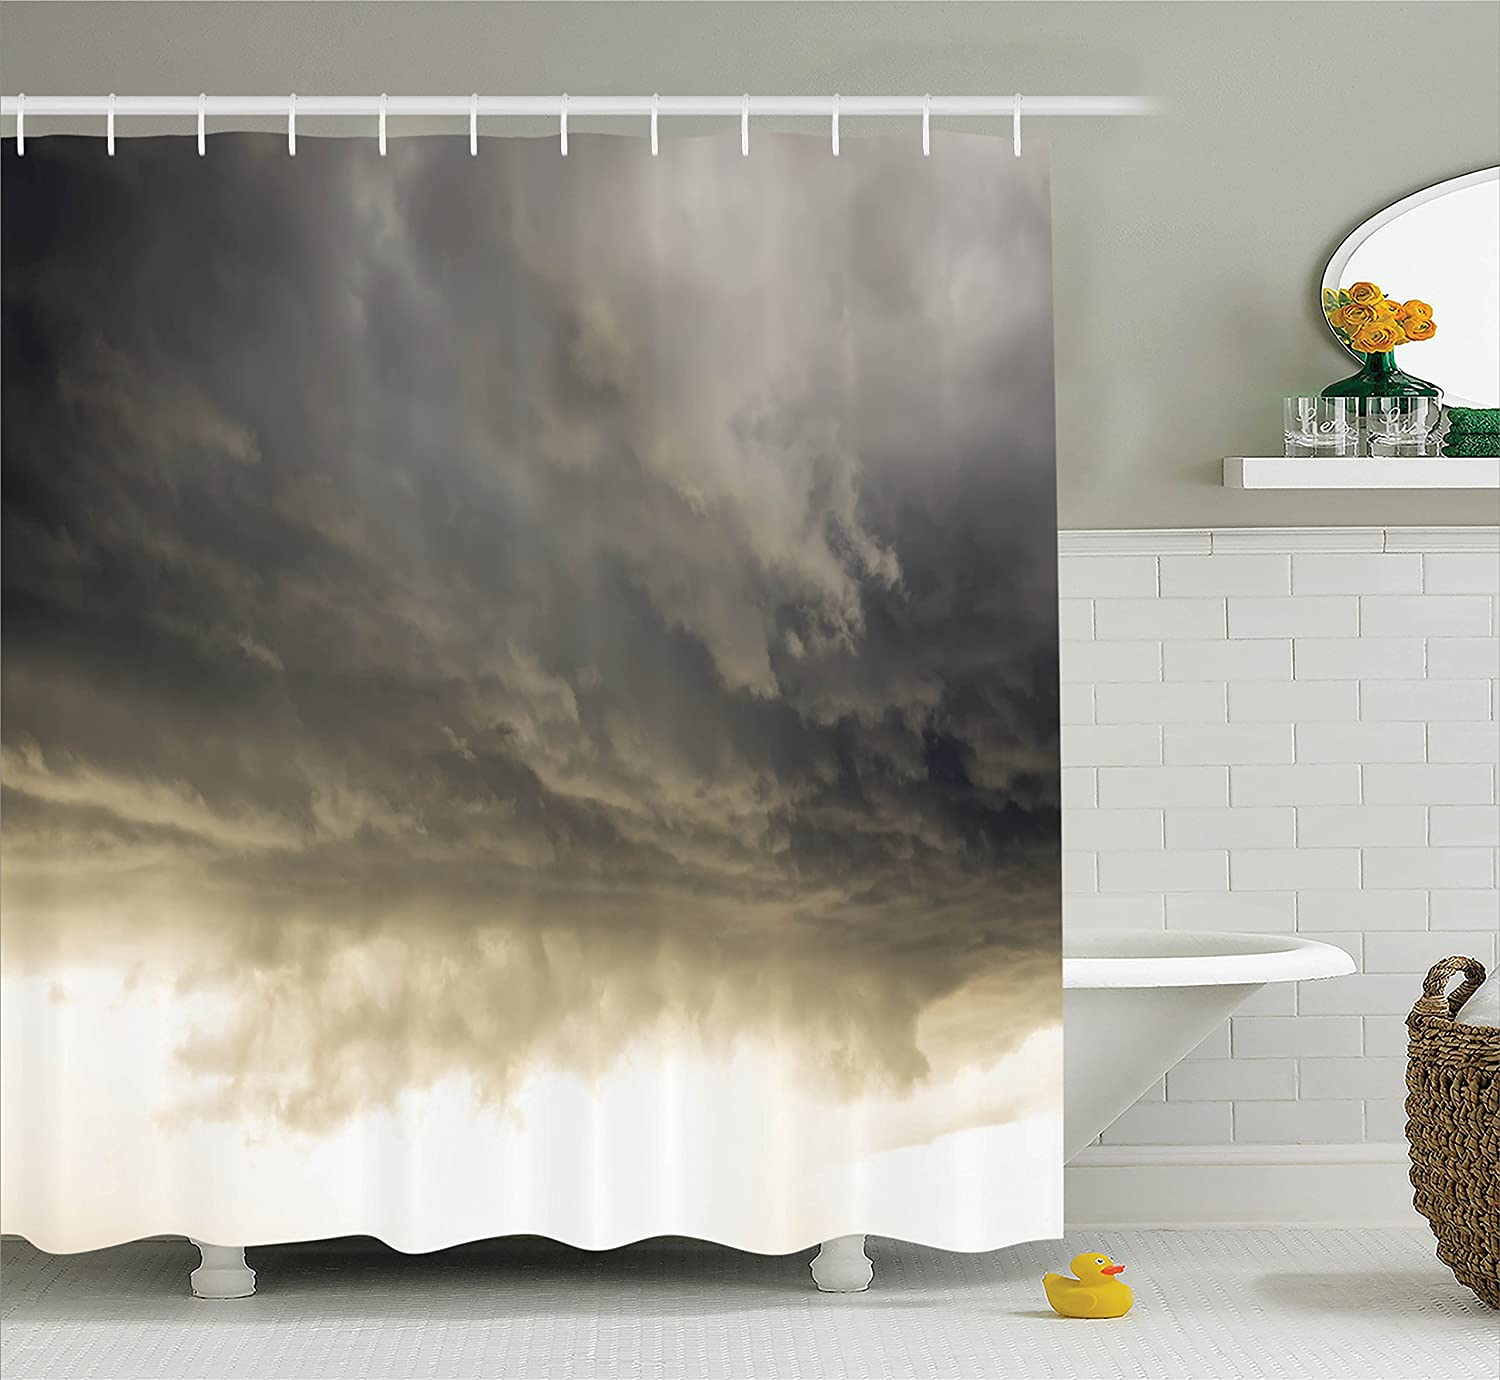 Oil Painting Style Artwork of Stormy Sea Splashing Waves Moon and Lighthouse 84 Inches Extra Long Ambesonne Lighthouse Shower Curtain Cloth Fabric Bathroom Decor Set with Hooks Ivory Blue